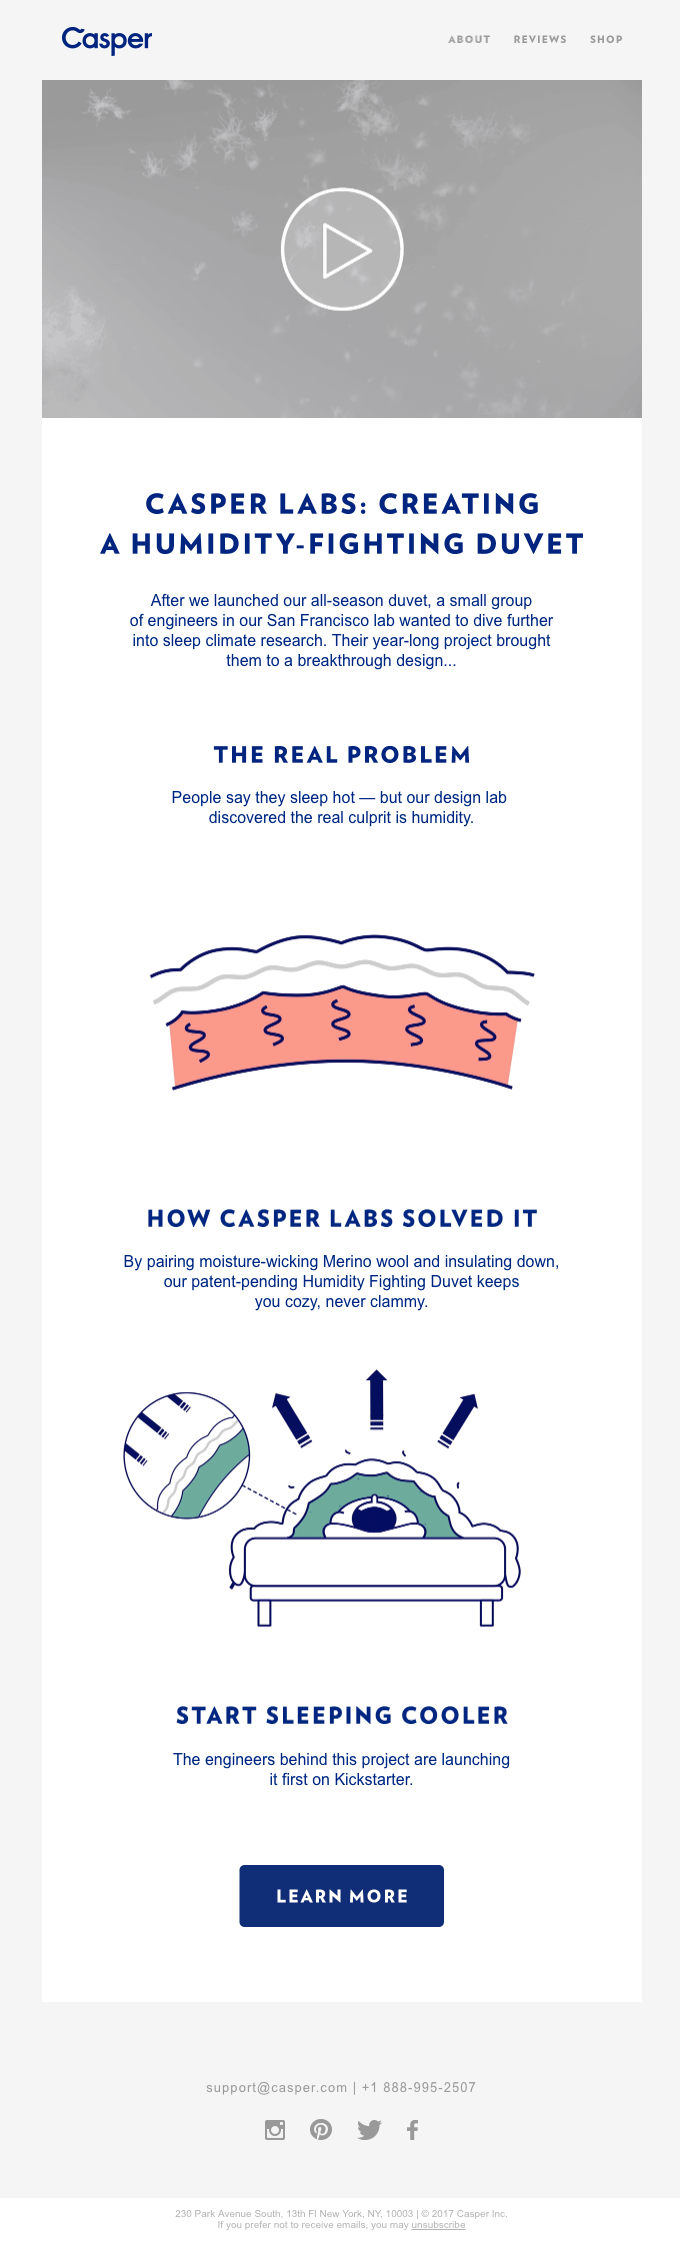 Casper Labs: Creating a Humidity-fighting Duvet